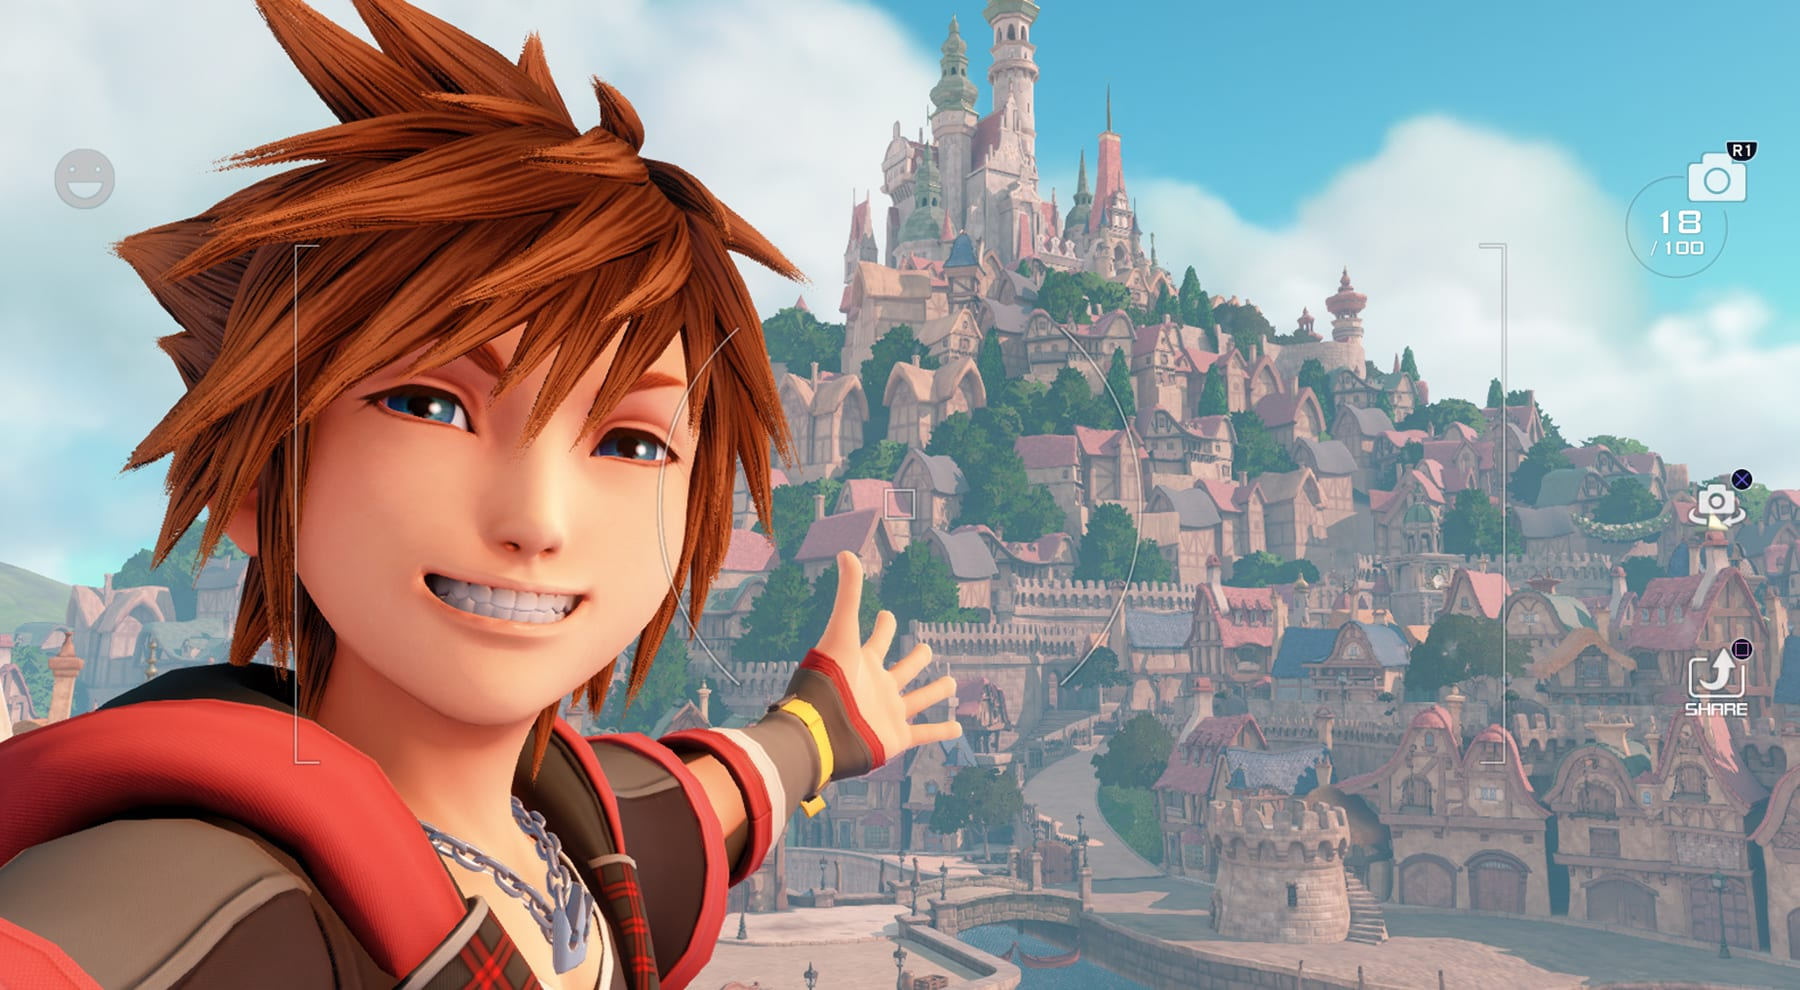 Sora is all about the 'gram in 'Kingdom Hearts 3'